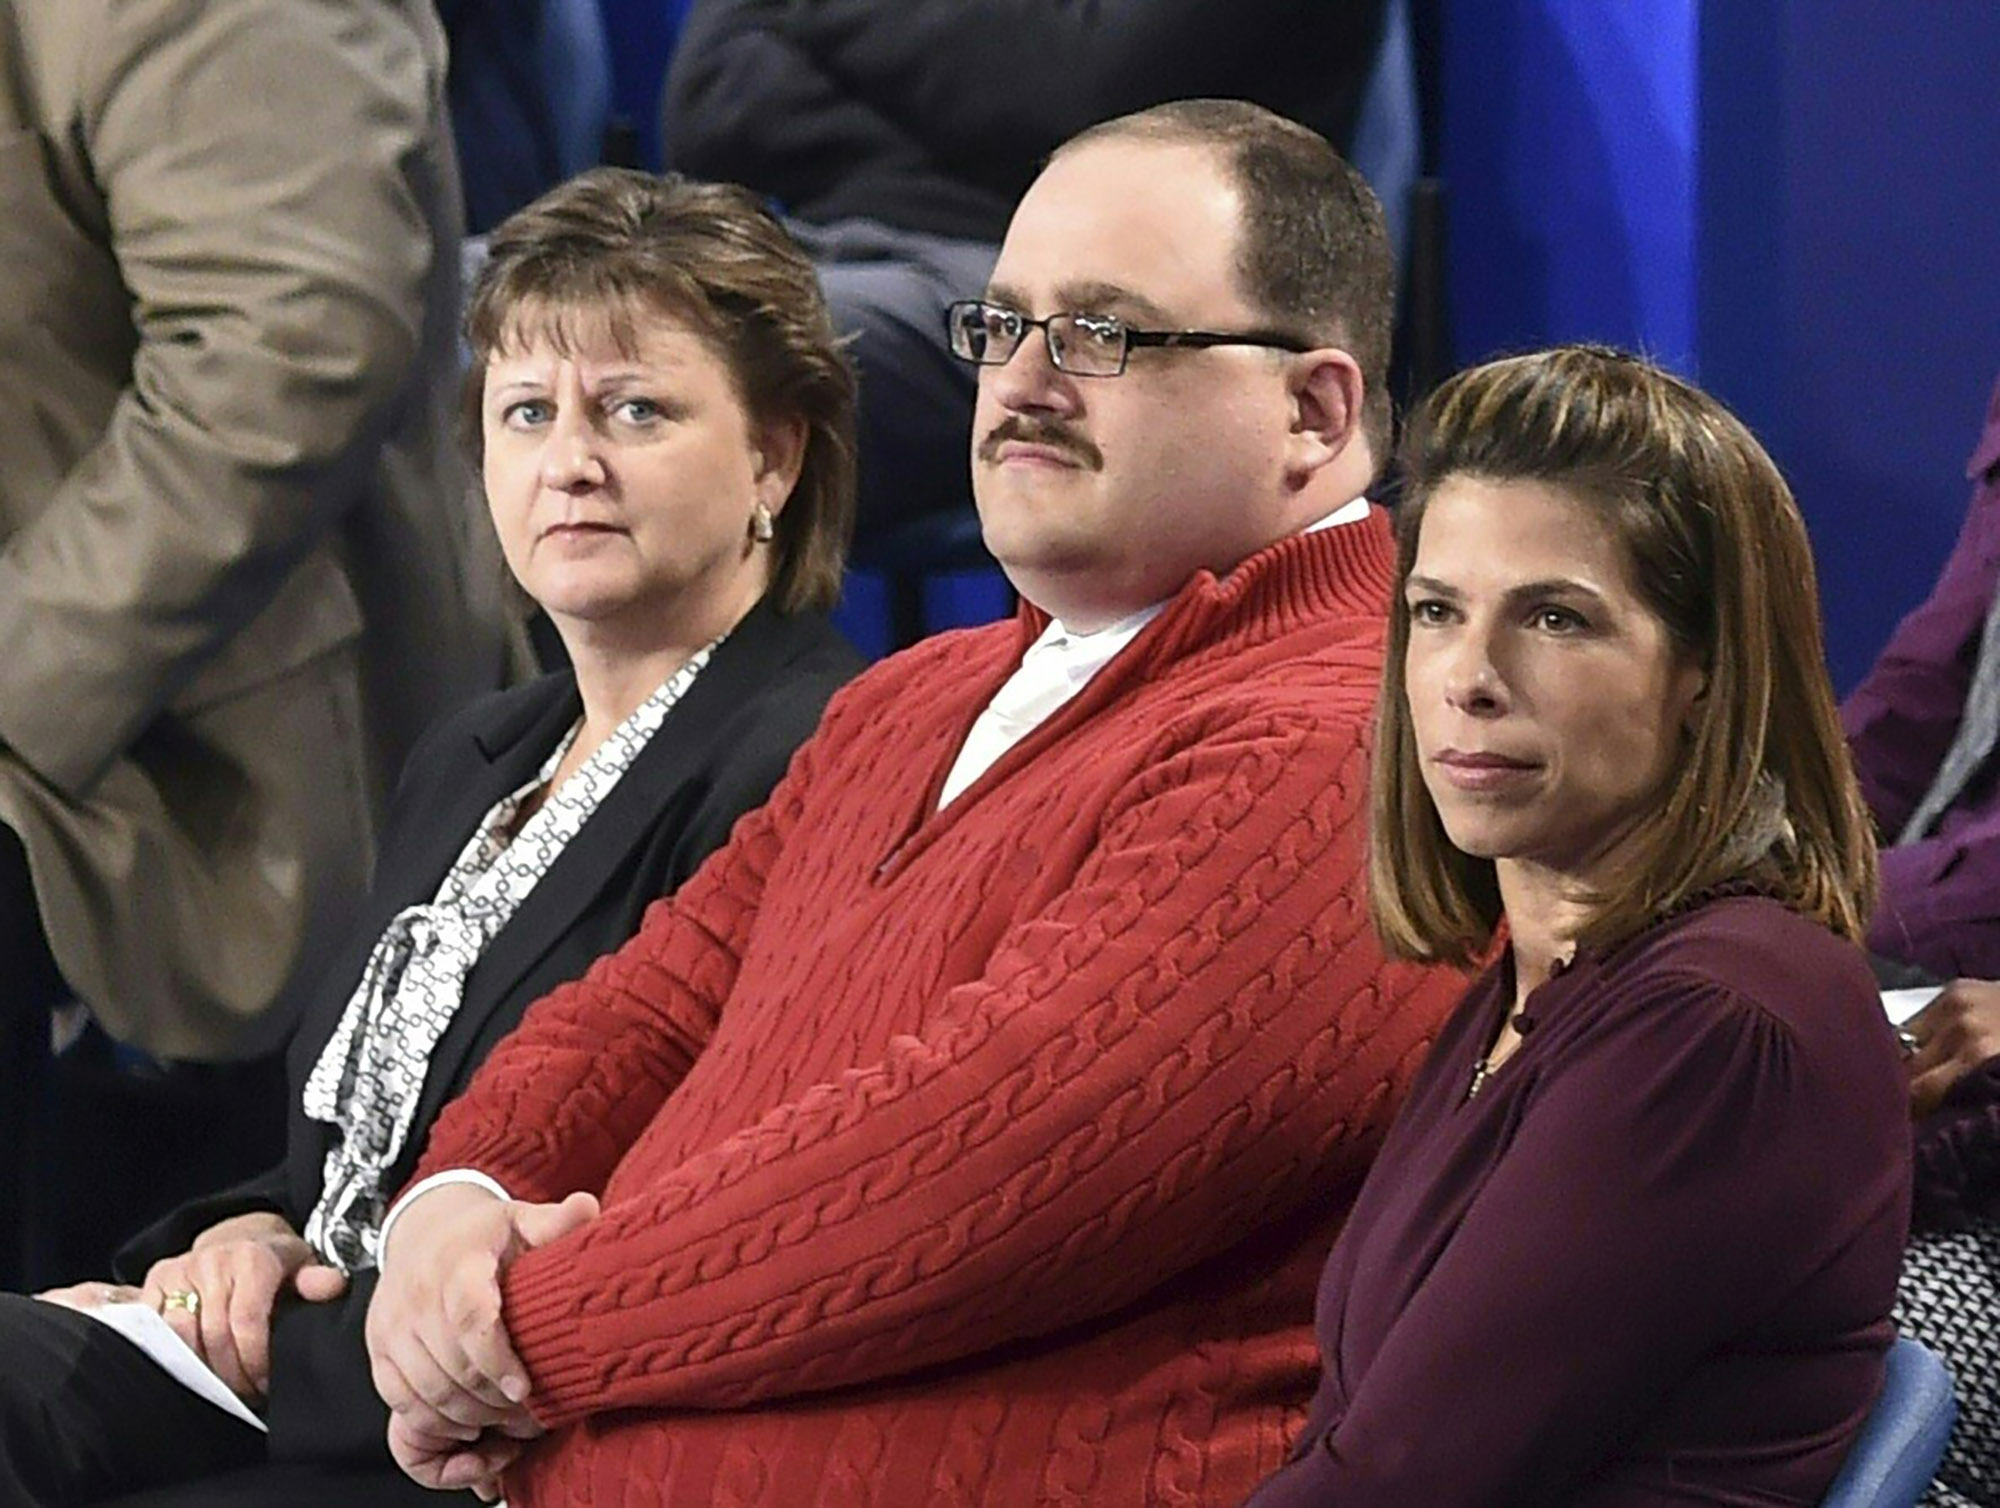 Ken Bone (C) listens to US Democratic nominee Hillary Clinton and Republican nominee Donald Trump during the second presidential debate at Washington University in St. Louis, Missouri.  (PAUL J. RICHARDS/AFP/Getty Images)